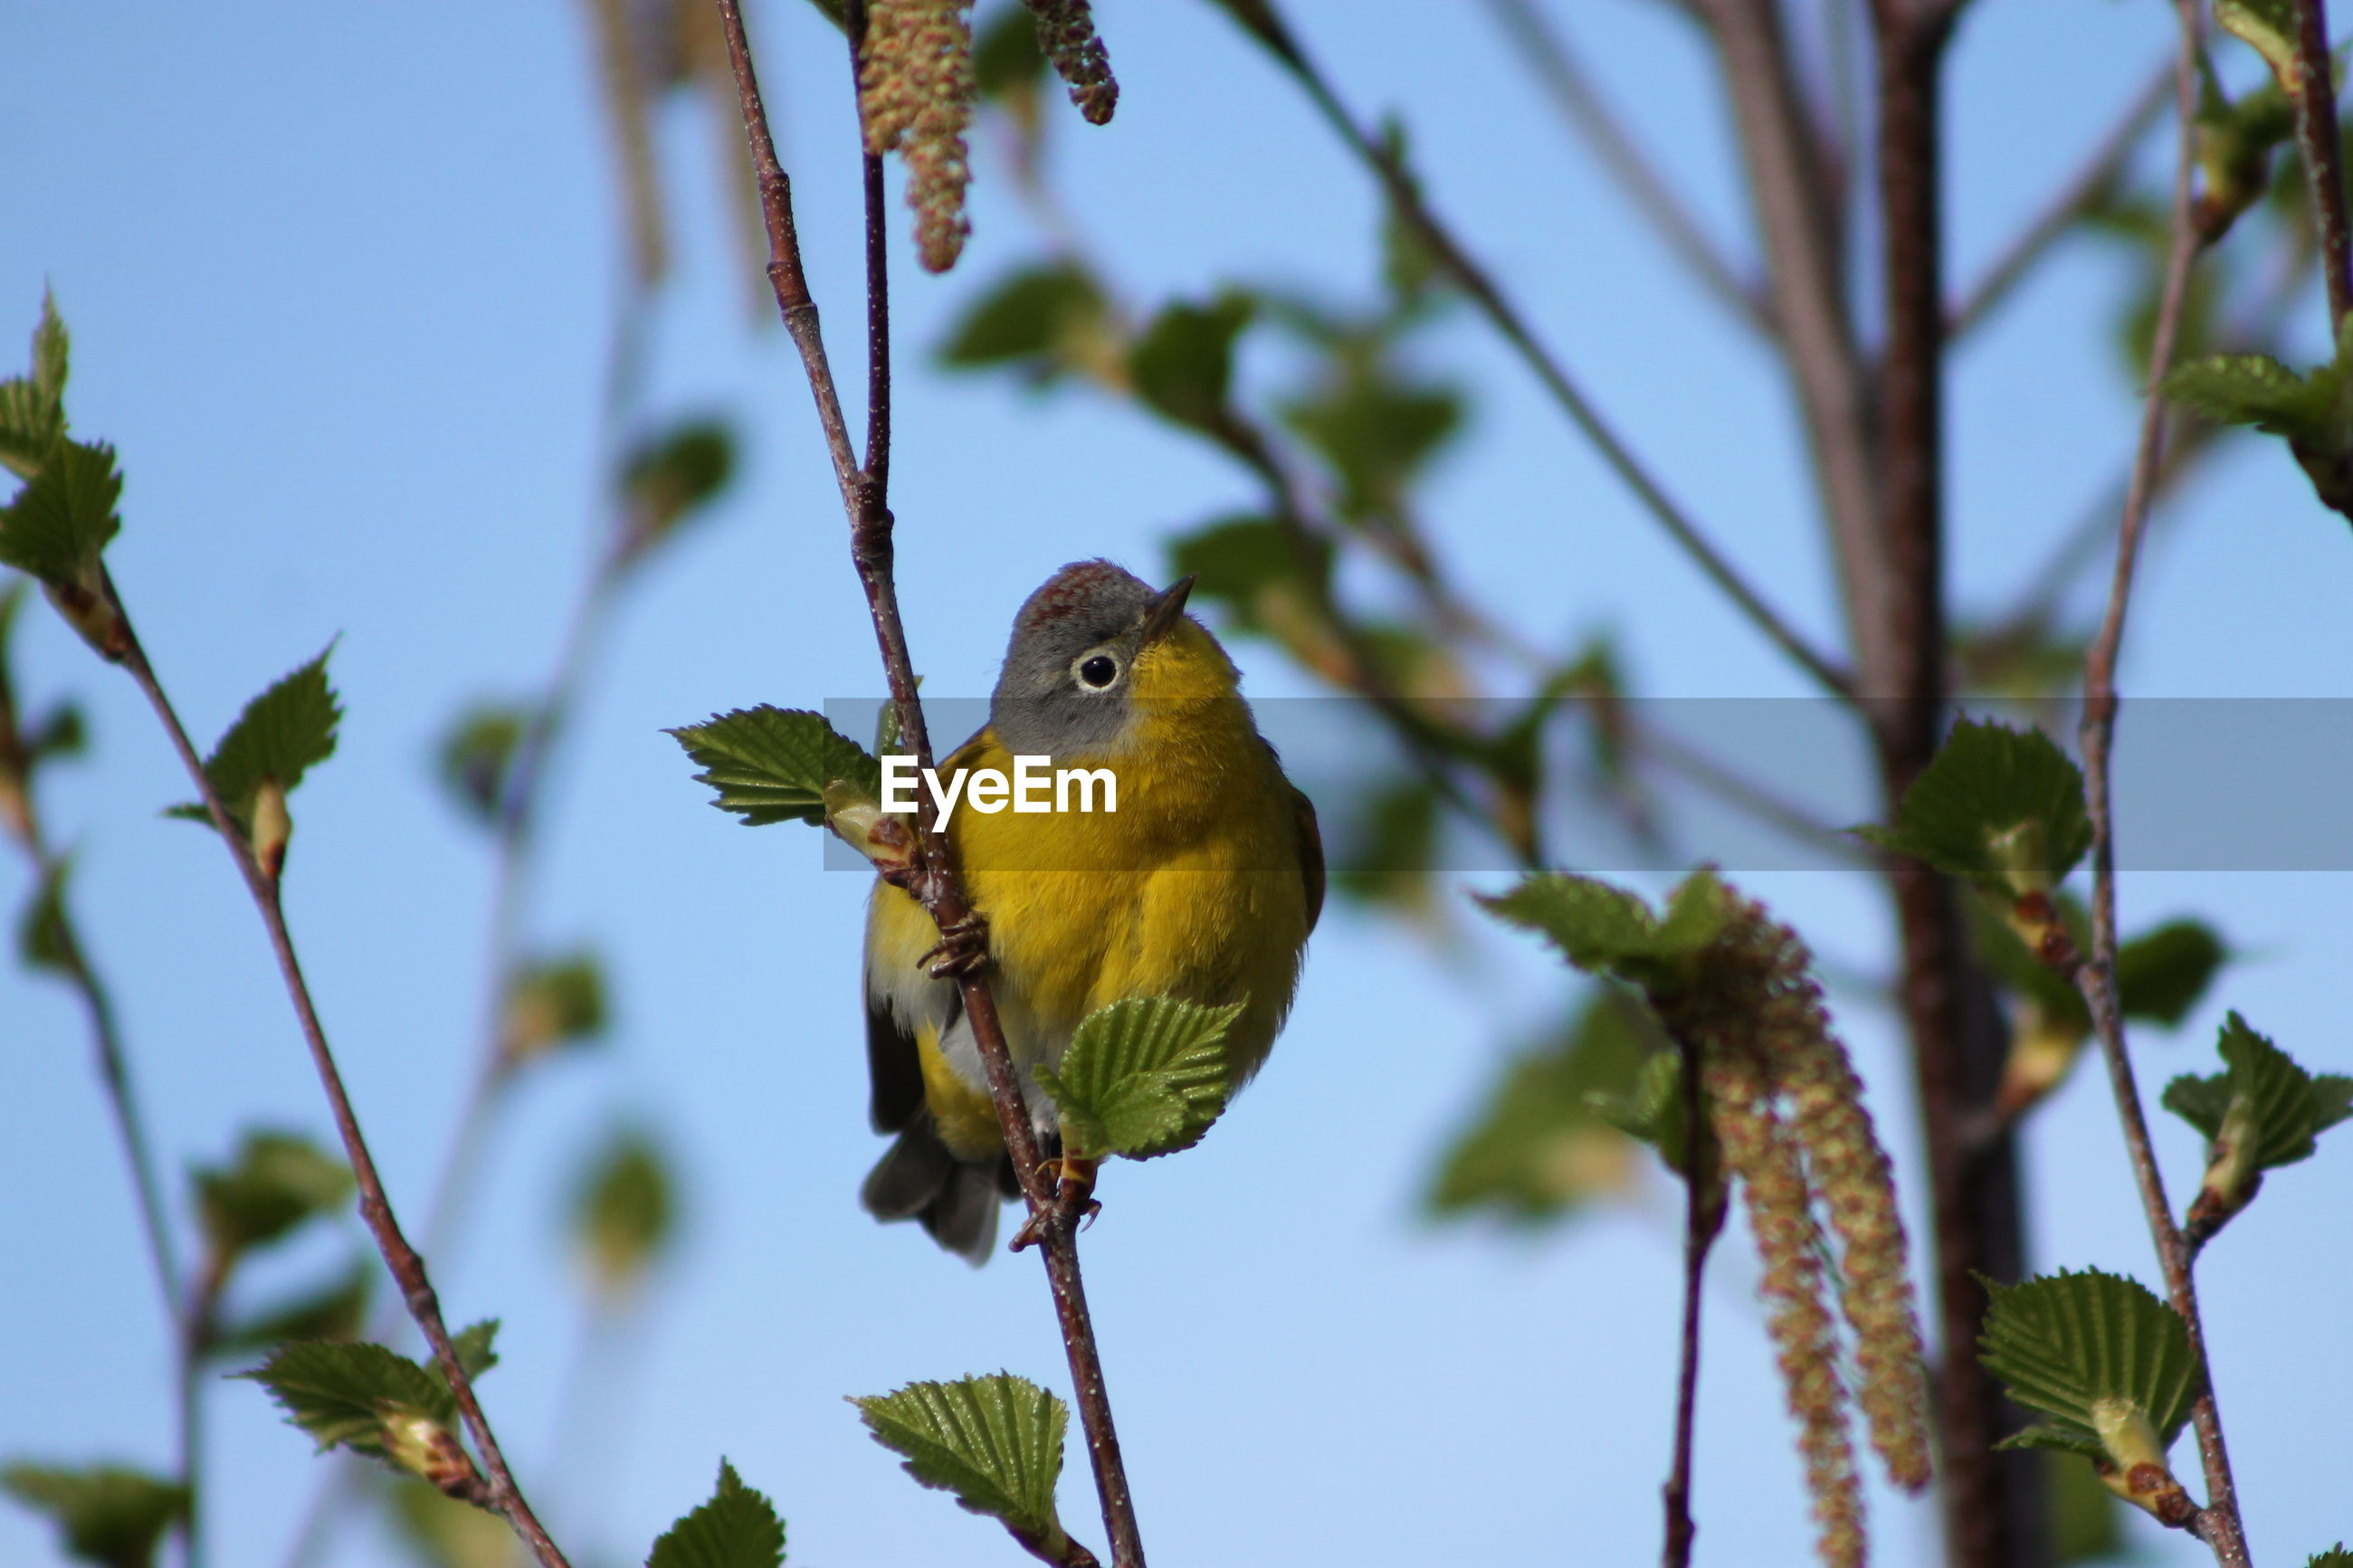 vertebrate, bird, plant, animal themes, animal, animal wildlife, tree, animals in the wild, perching, one animal, low angle view, nature, branch, no people, day, focus on foreground, leaf, plant part, growth, sky, outdoors